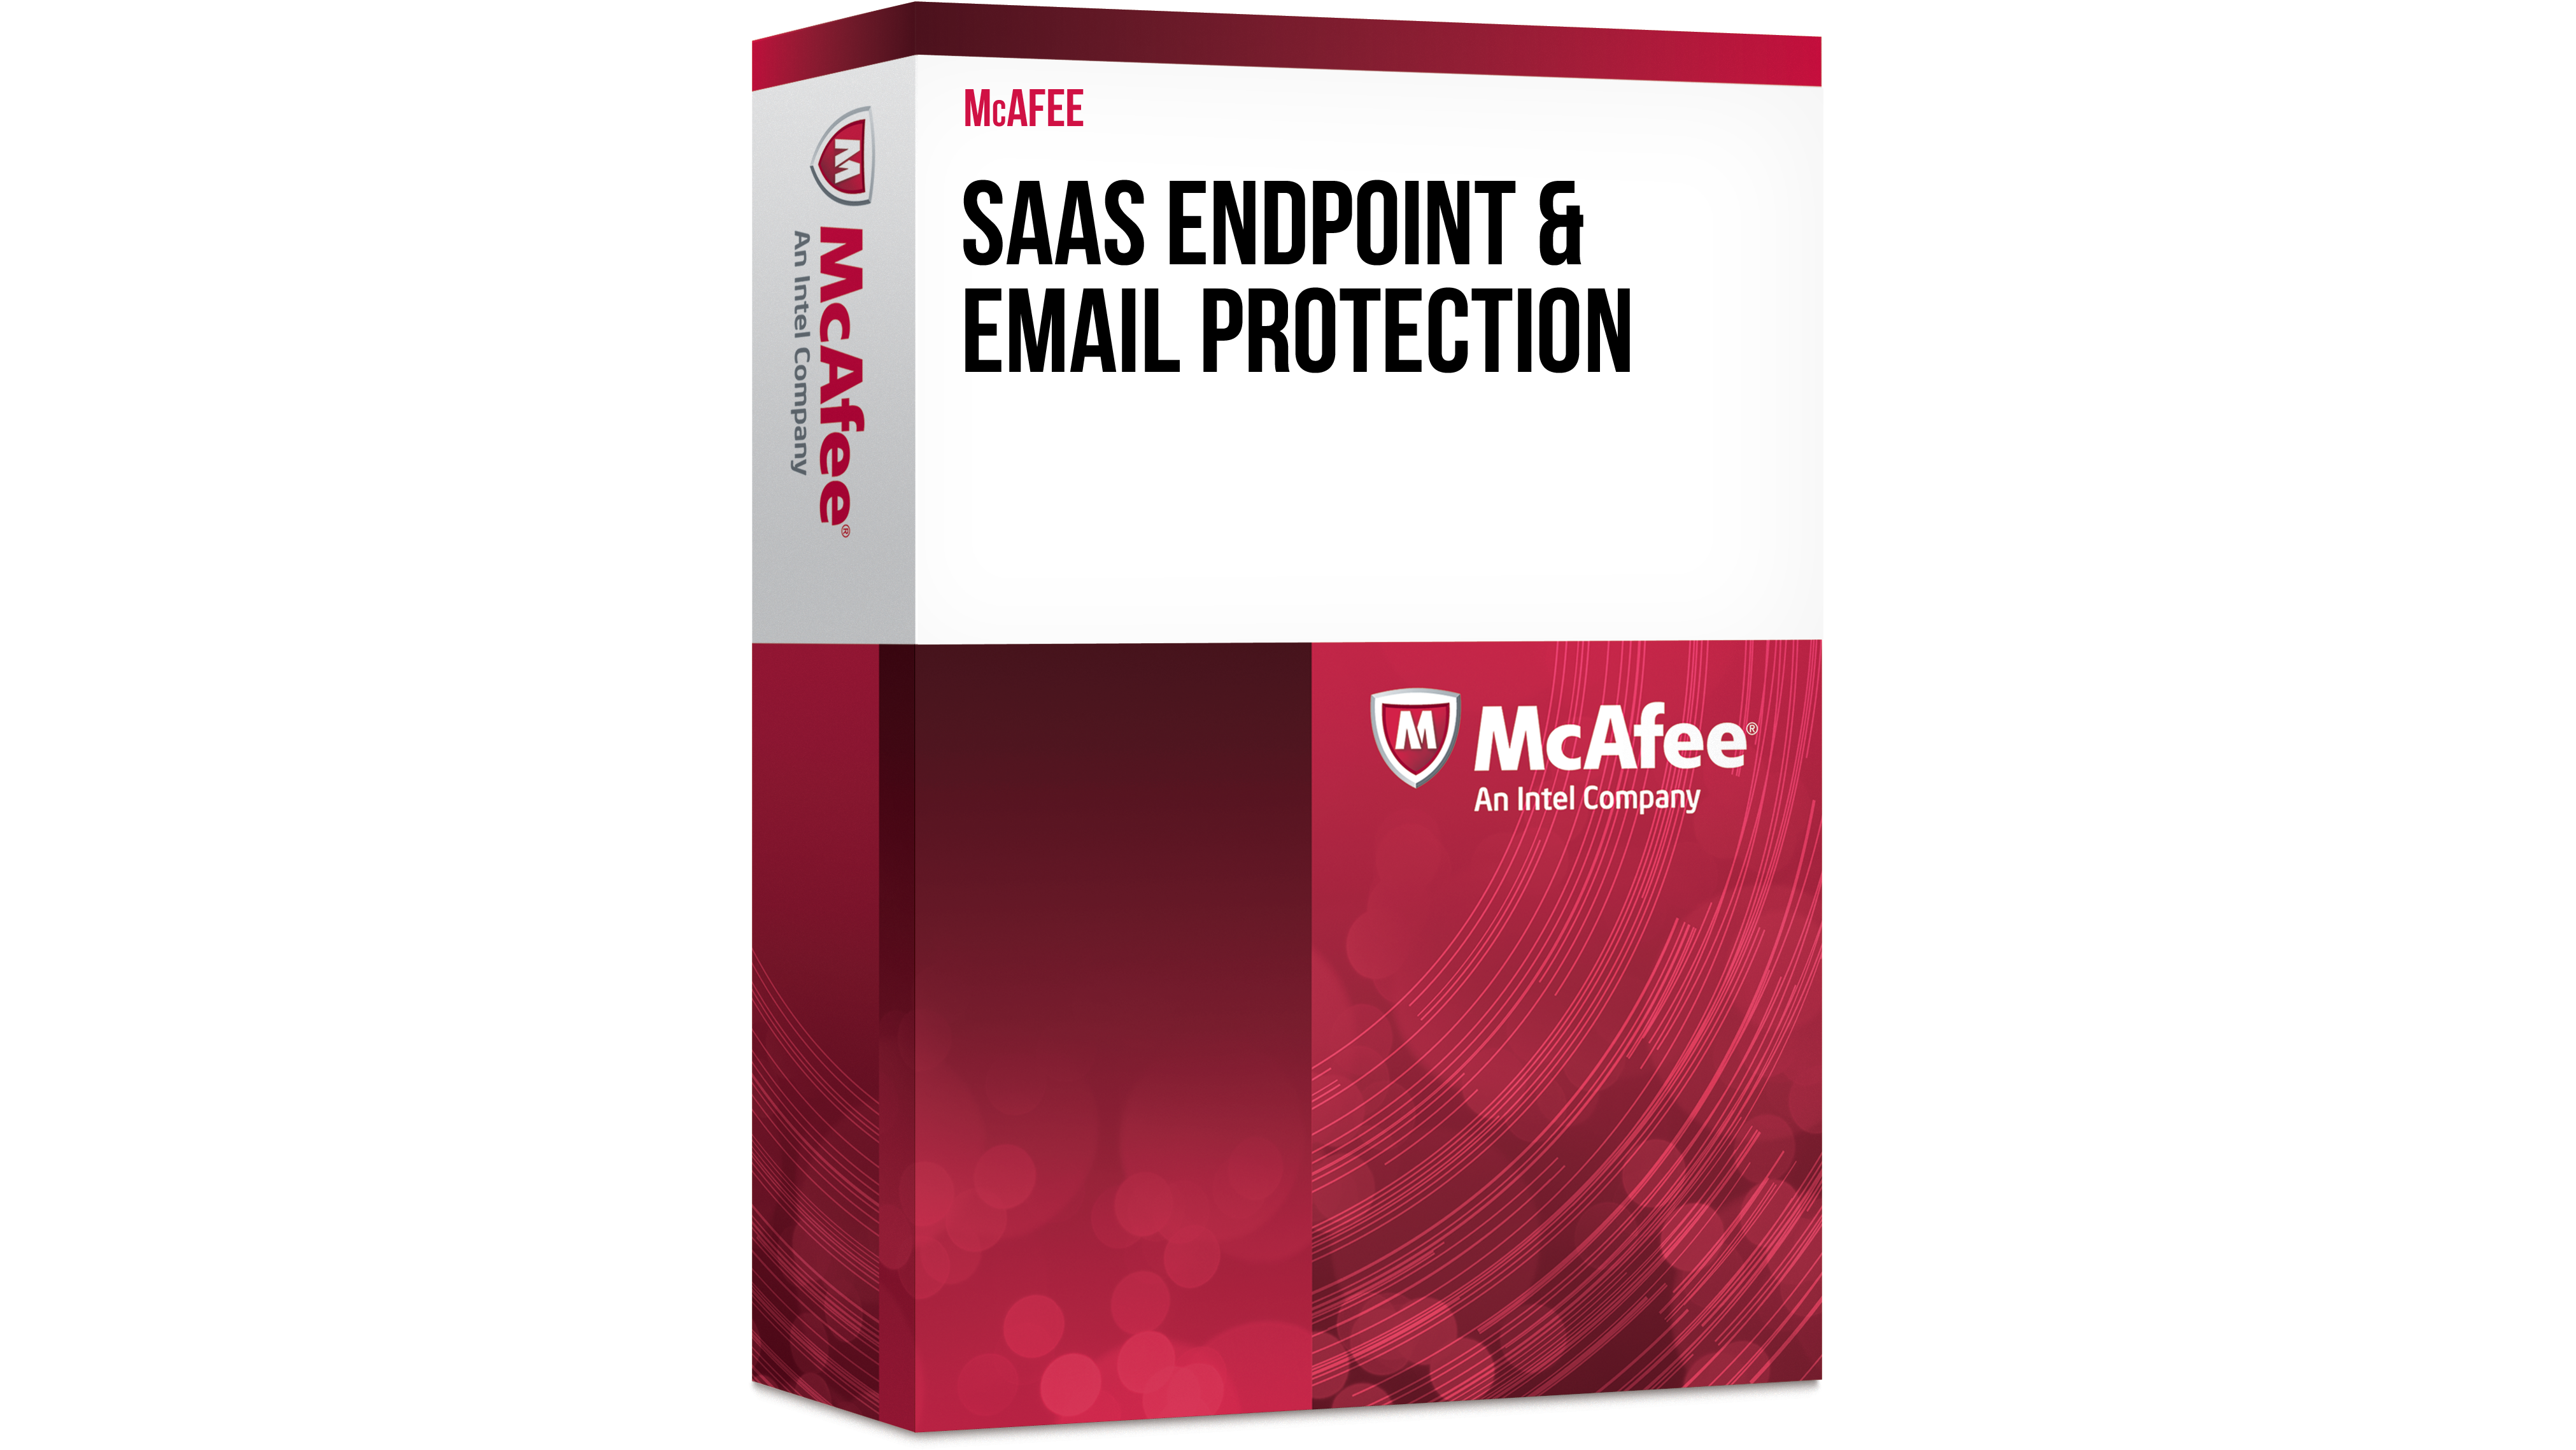 crack mcafee endpoint encryption password